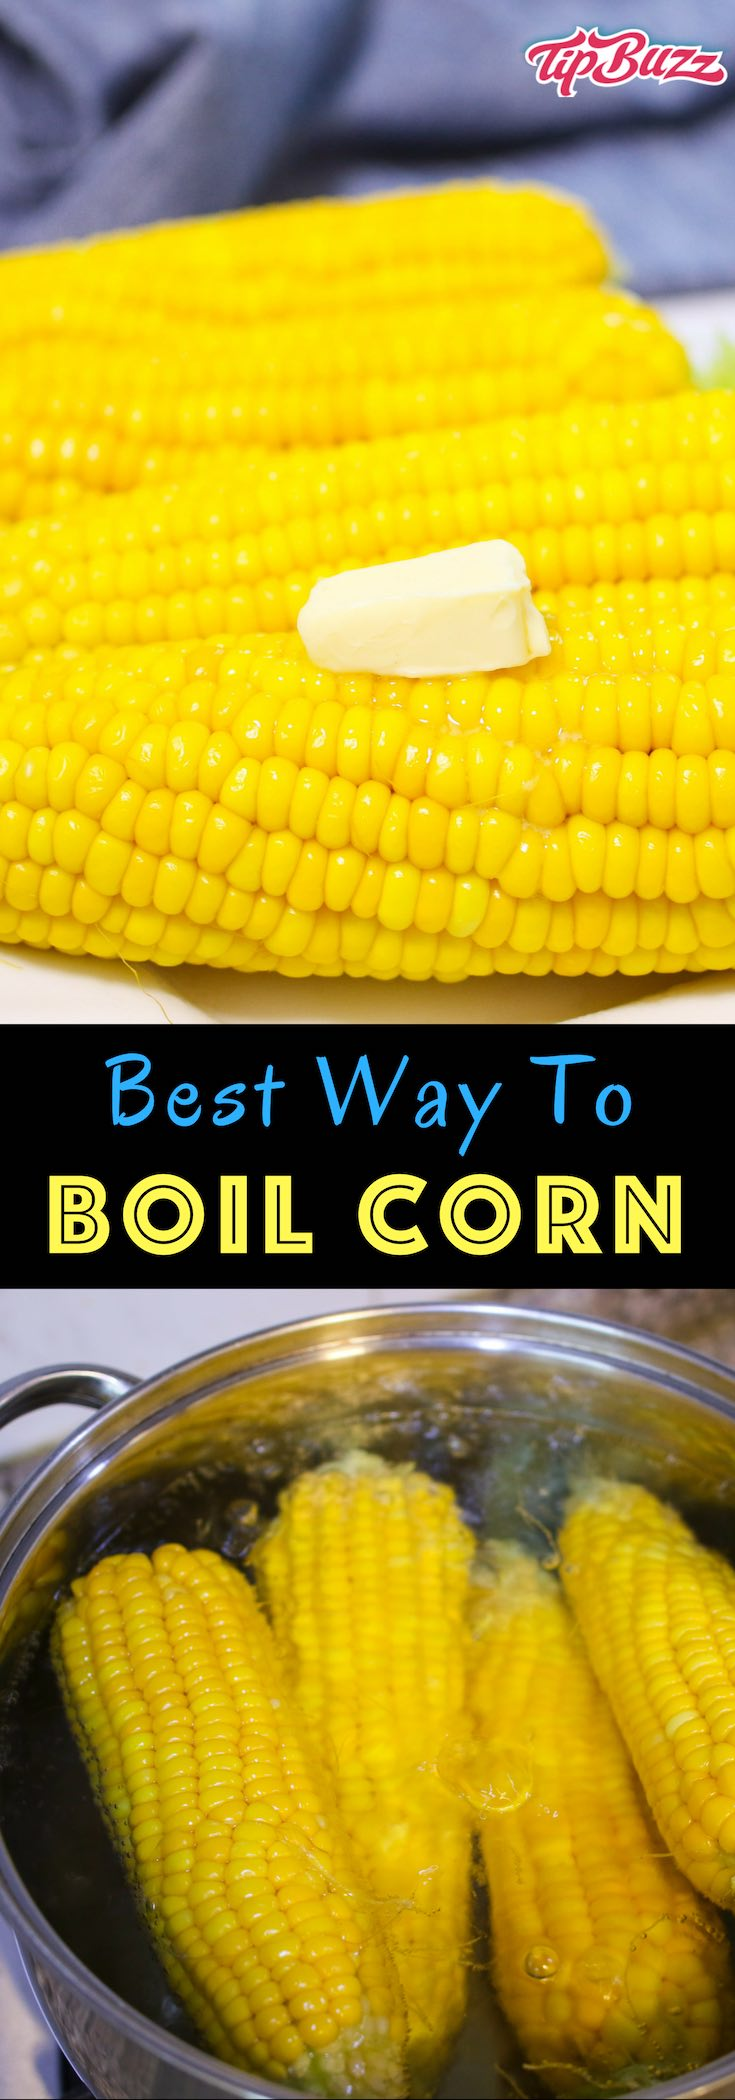 Boiling corn on the cob is perfect for backyard bbqs and other get-togethers, and it only takes minutes to make.